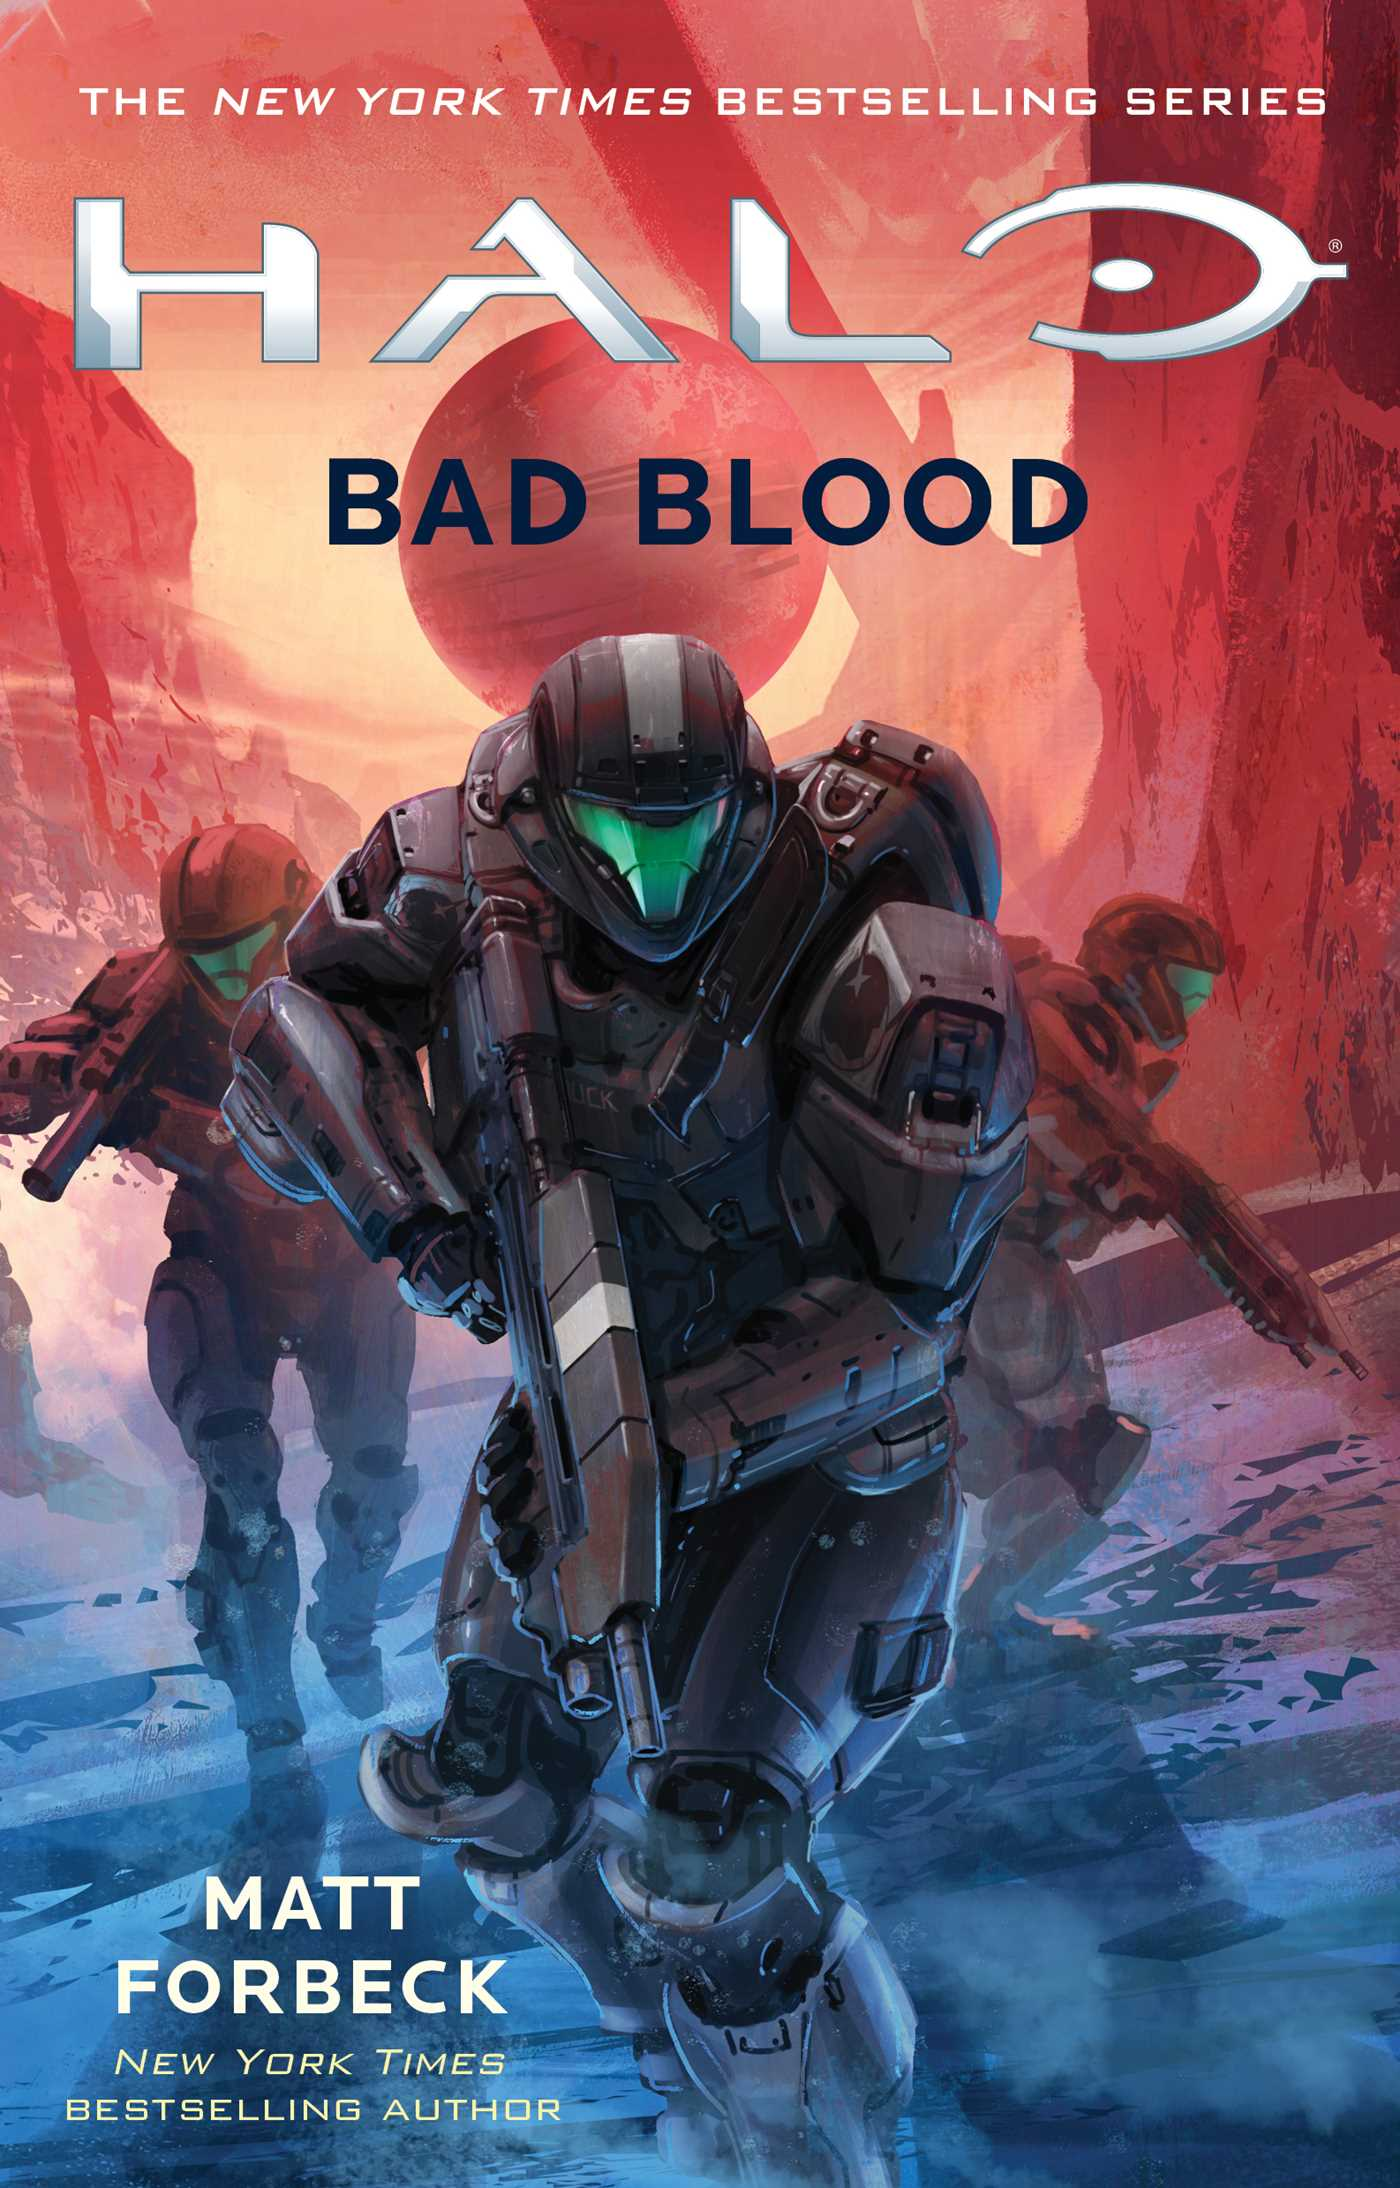 Halo_Bad_Blood.jpg